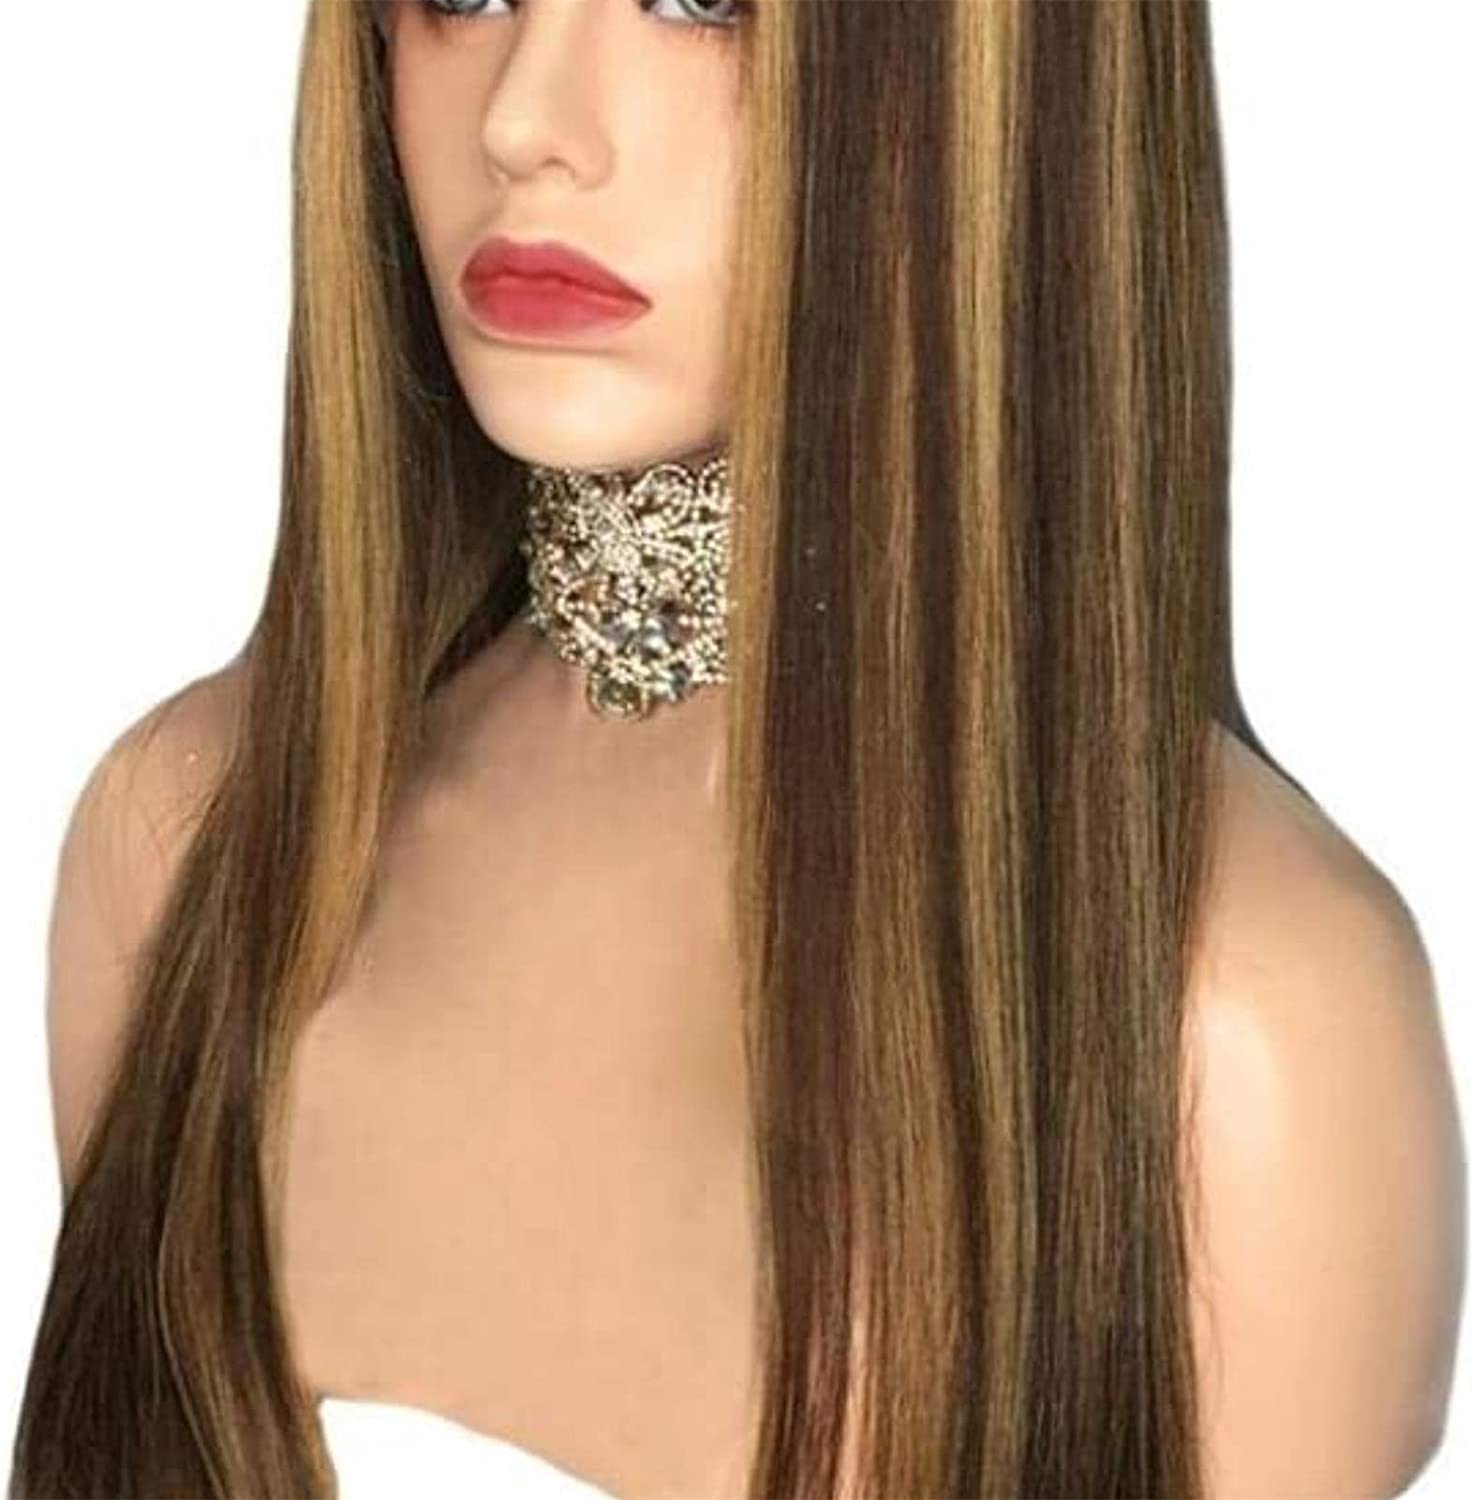 XZGDEN Hair Genuine Replacement Wig Straight Blond 13X4 Lace Fort Worth Mall Honey